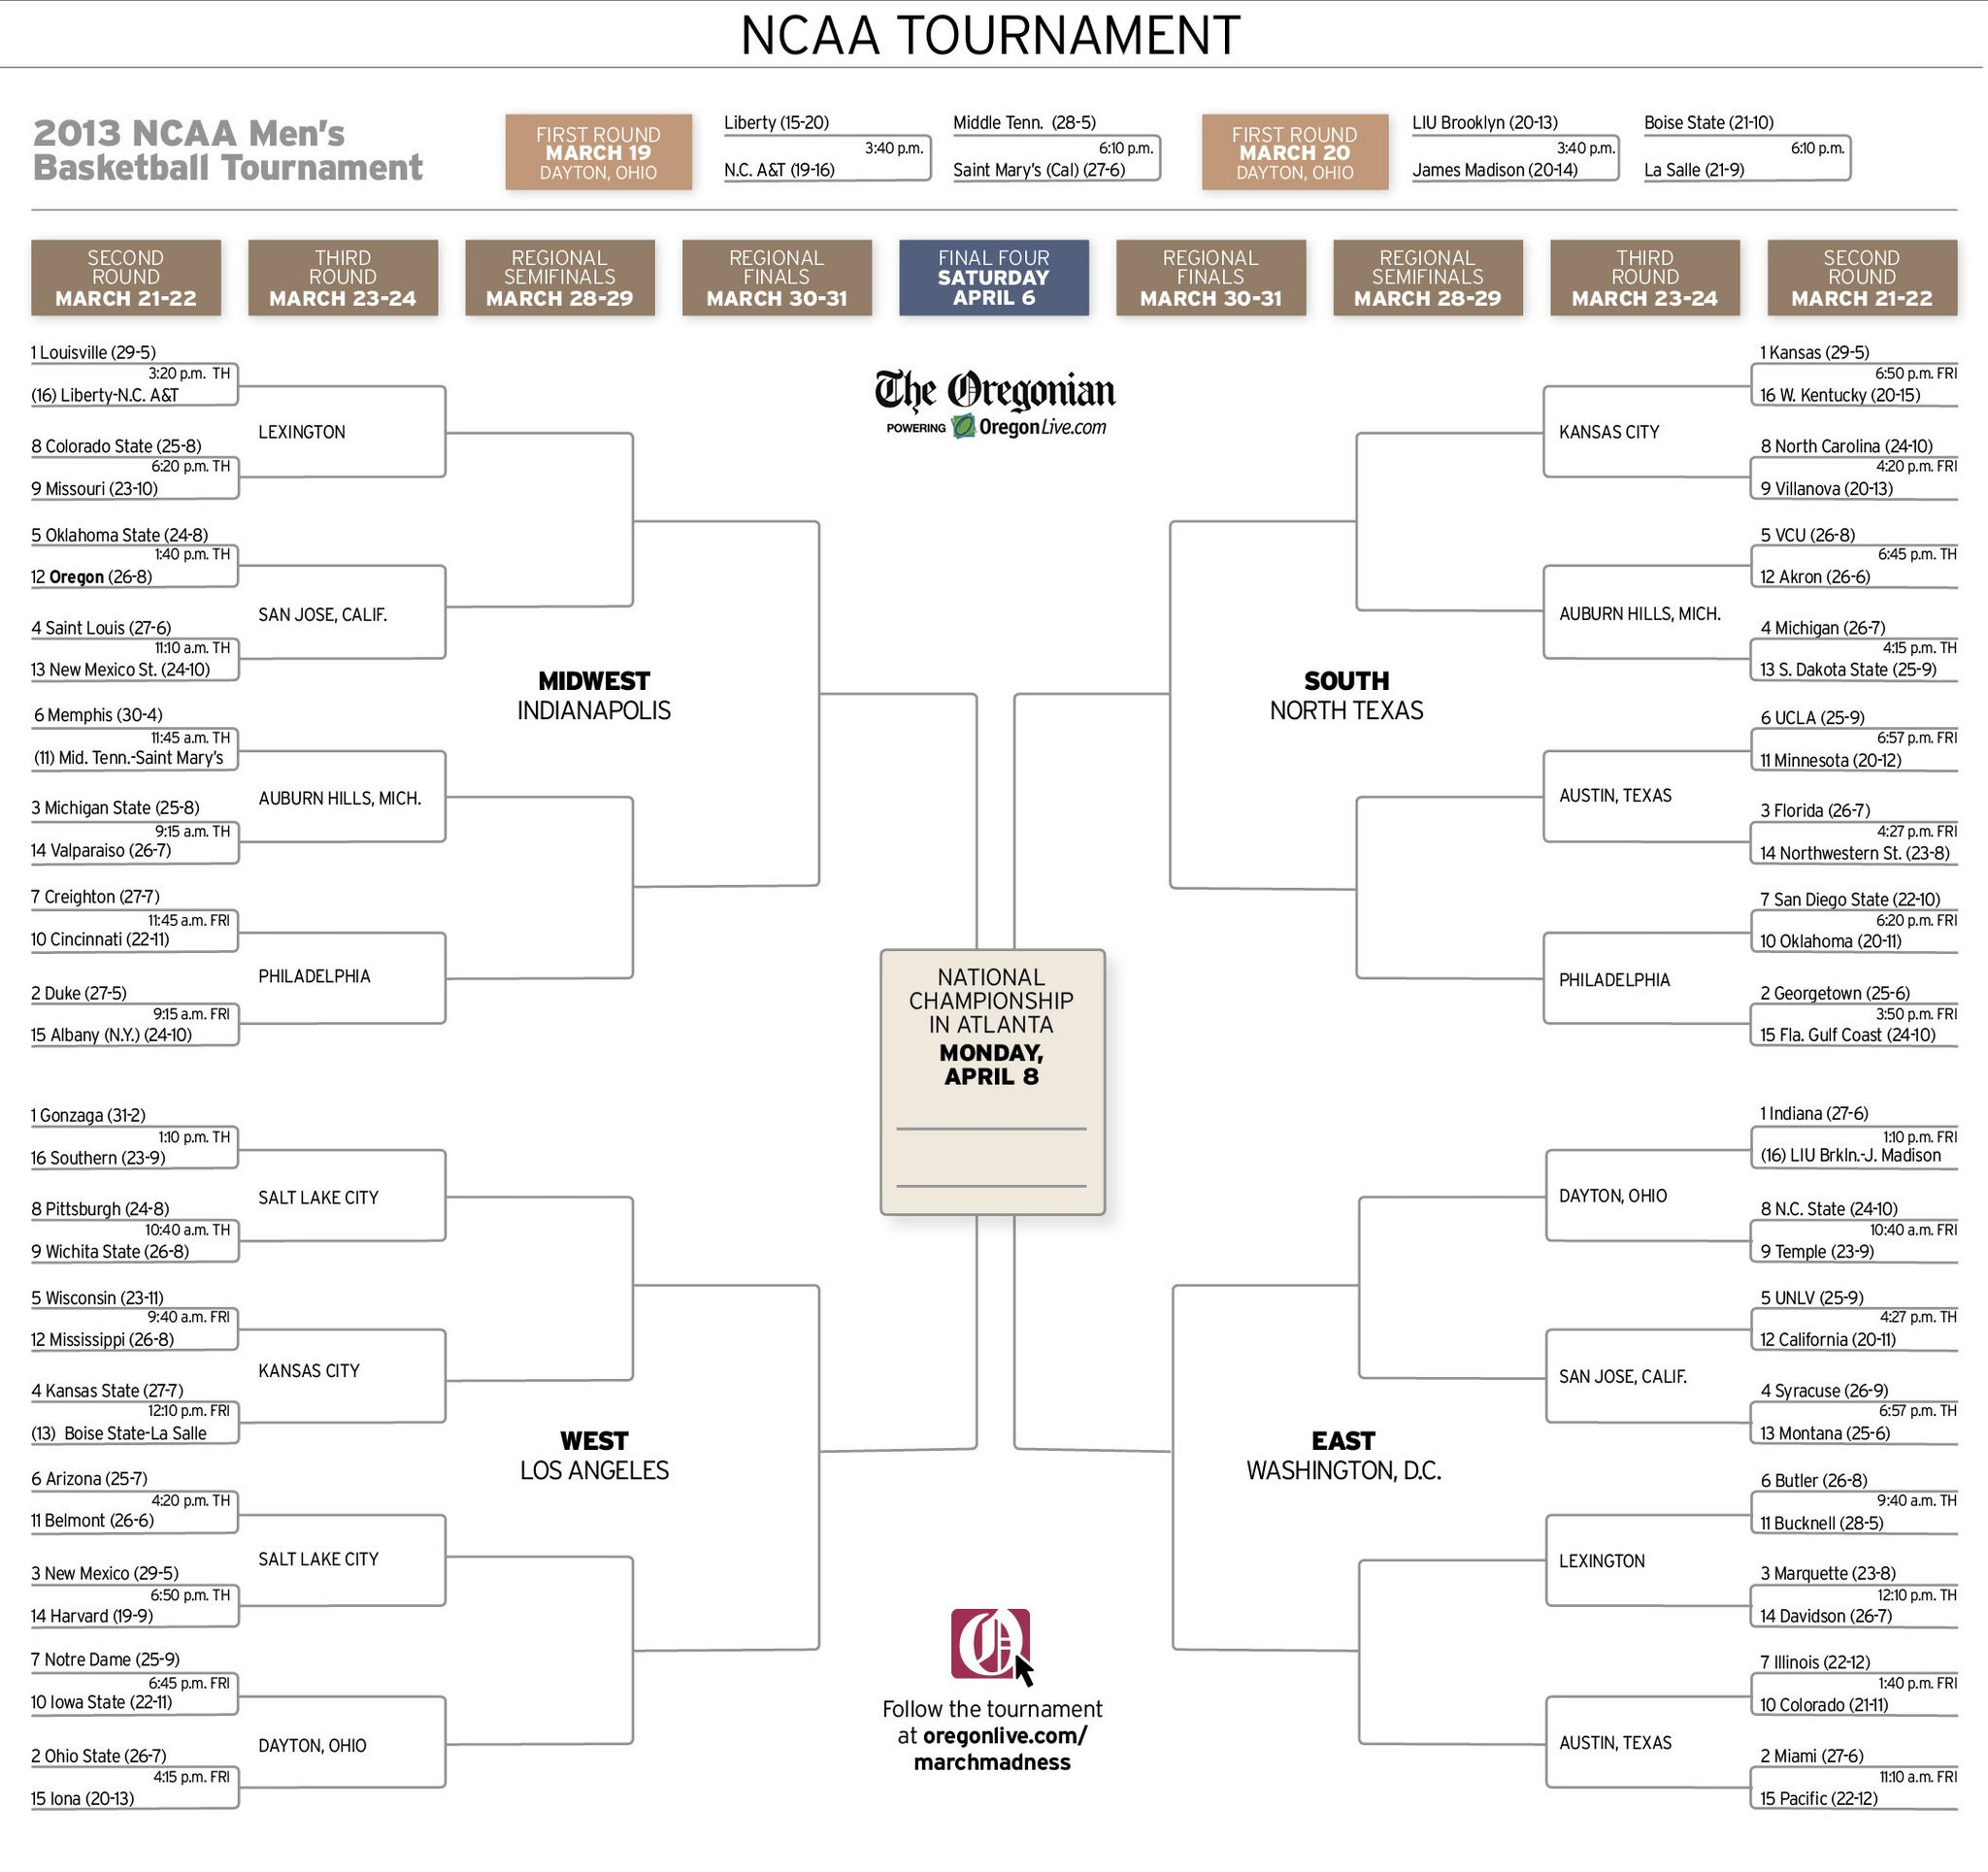 image relating to Printable Big Ten Tournament Bracket identify NCAA Event bracket 2013: Printable March Insanity